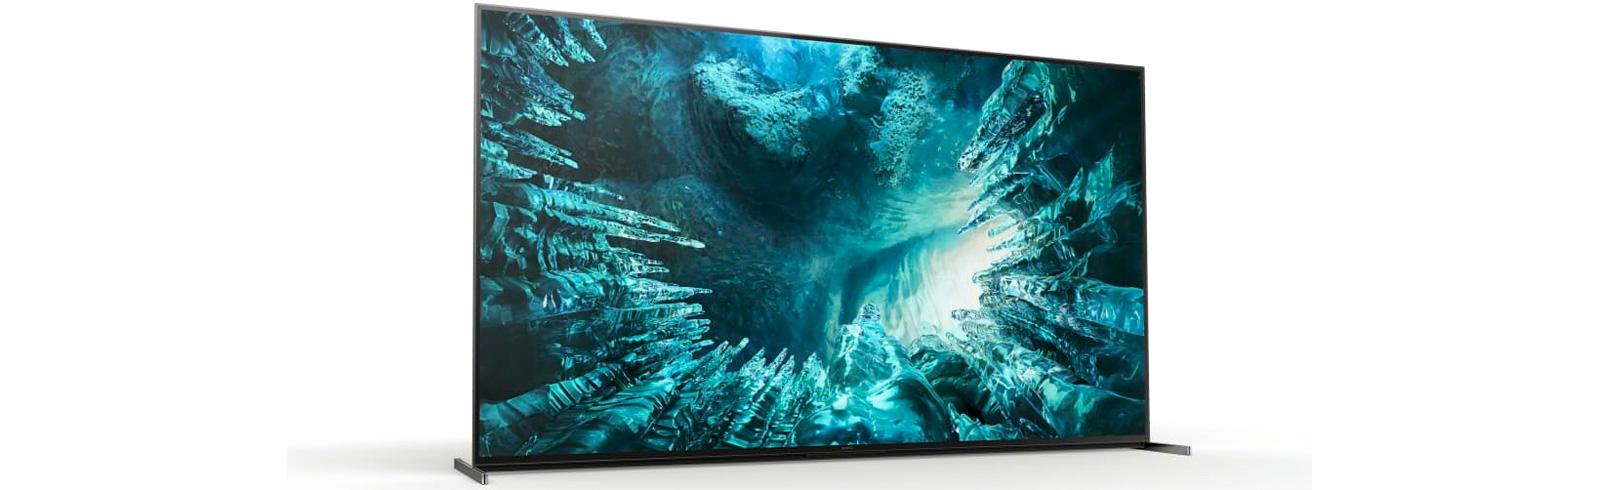 The Sony ZH8 8K TVs will go on sale in Europe next month - KD-85ZH8 and KD-75ZH8